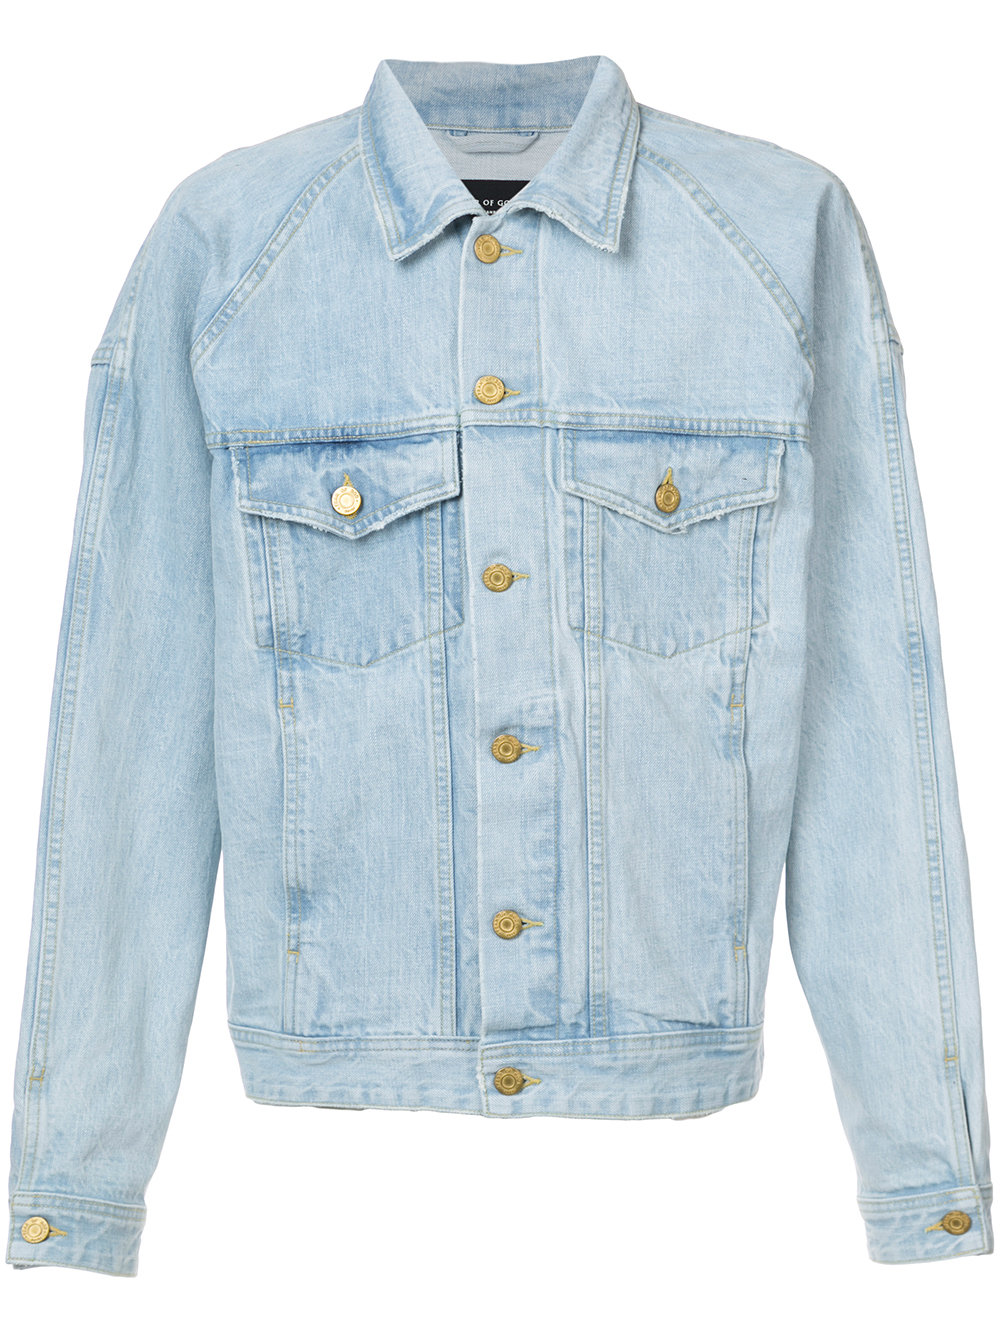 OEM designer men winter light blue jeans jacket